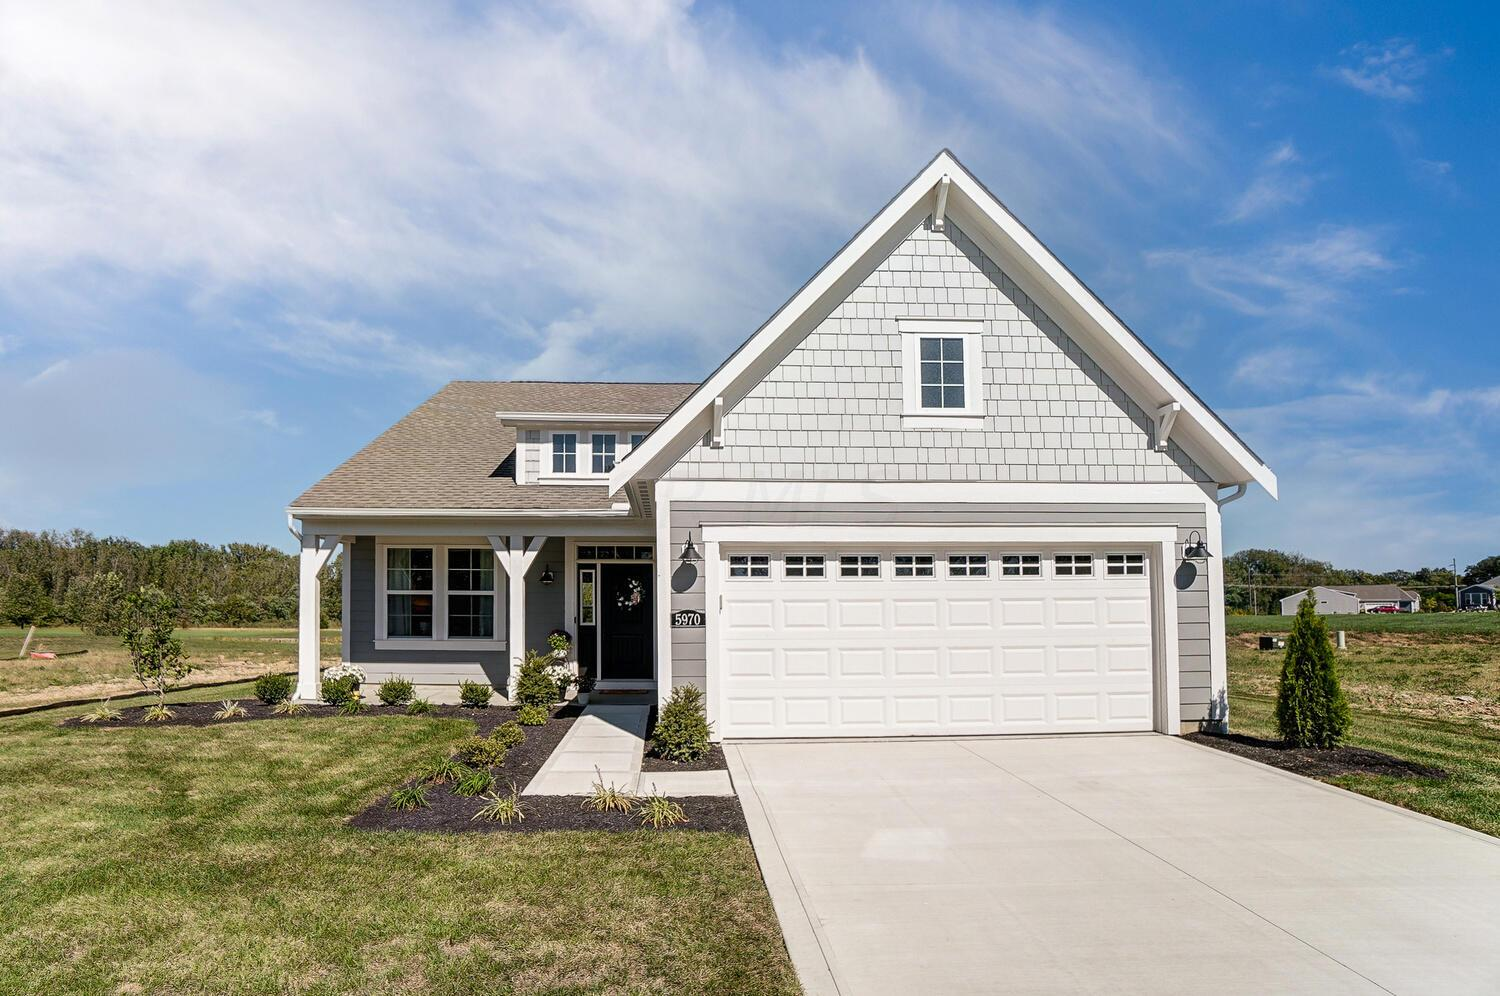 Photo of 5970 Wilson Drive, Canal Winchester, OH 43110